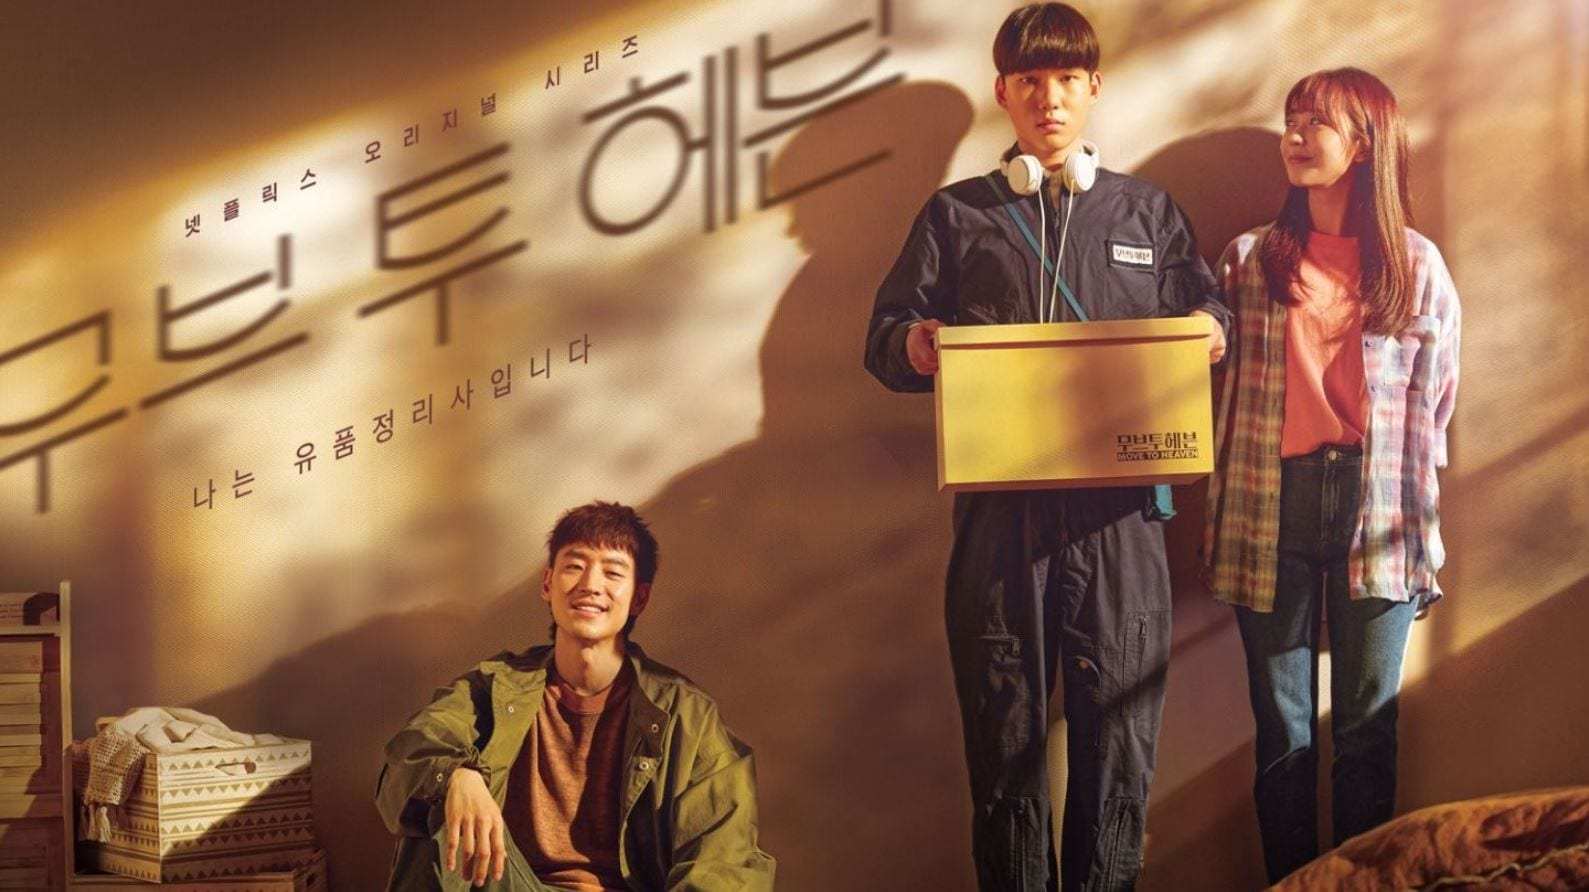 Move to Heaven Ending Explained: What Happens to Geu-ru and Sang Gu?